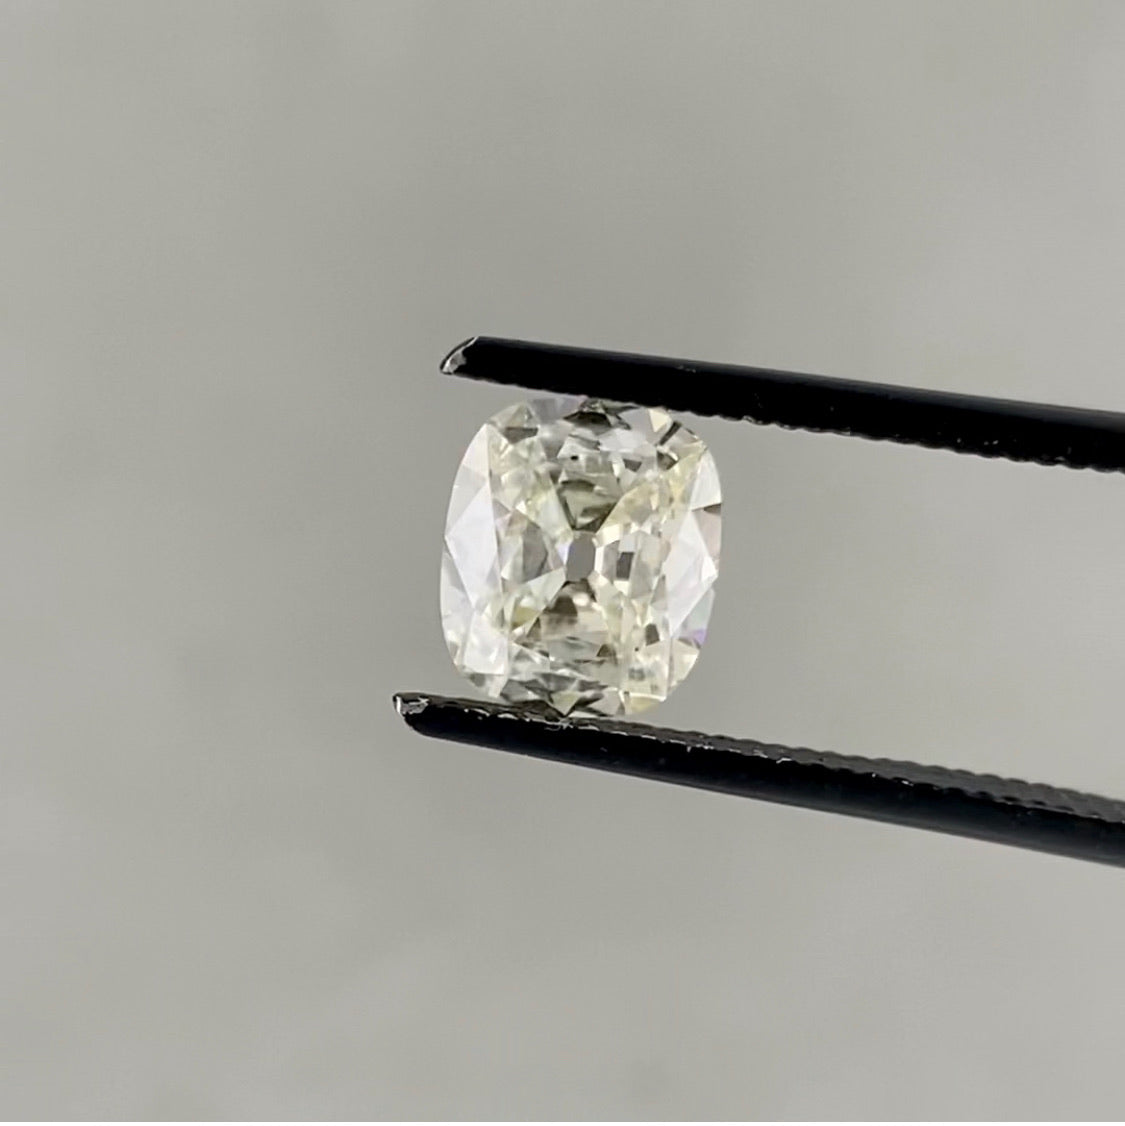 1.06ct Antique Cut Cushion L held in black diamond tweezers above a grey background